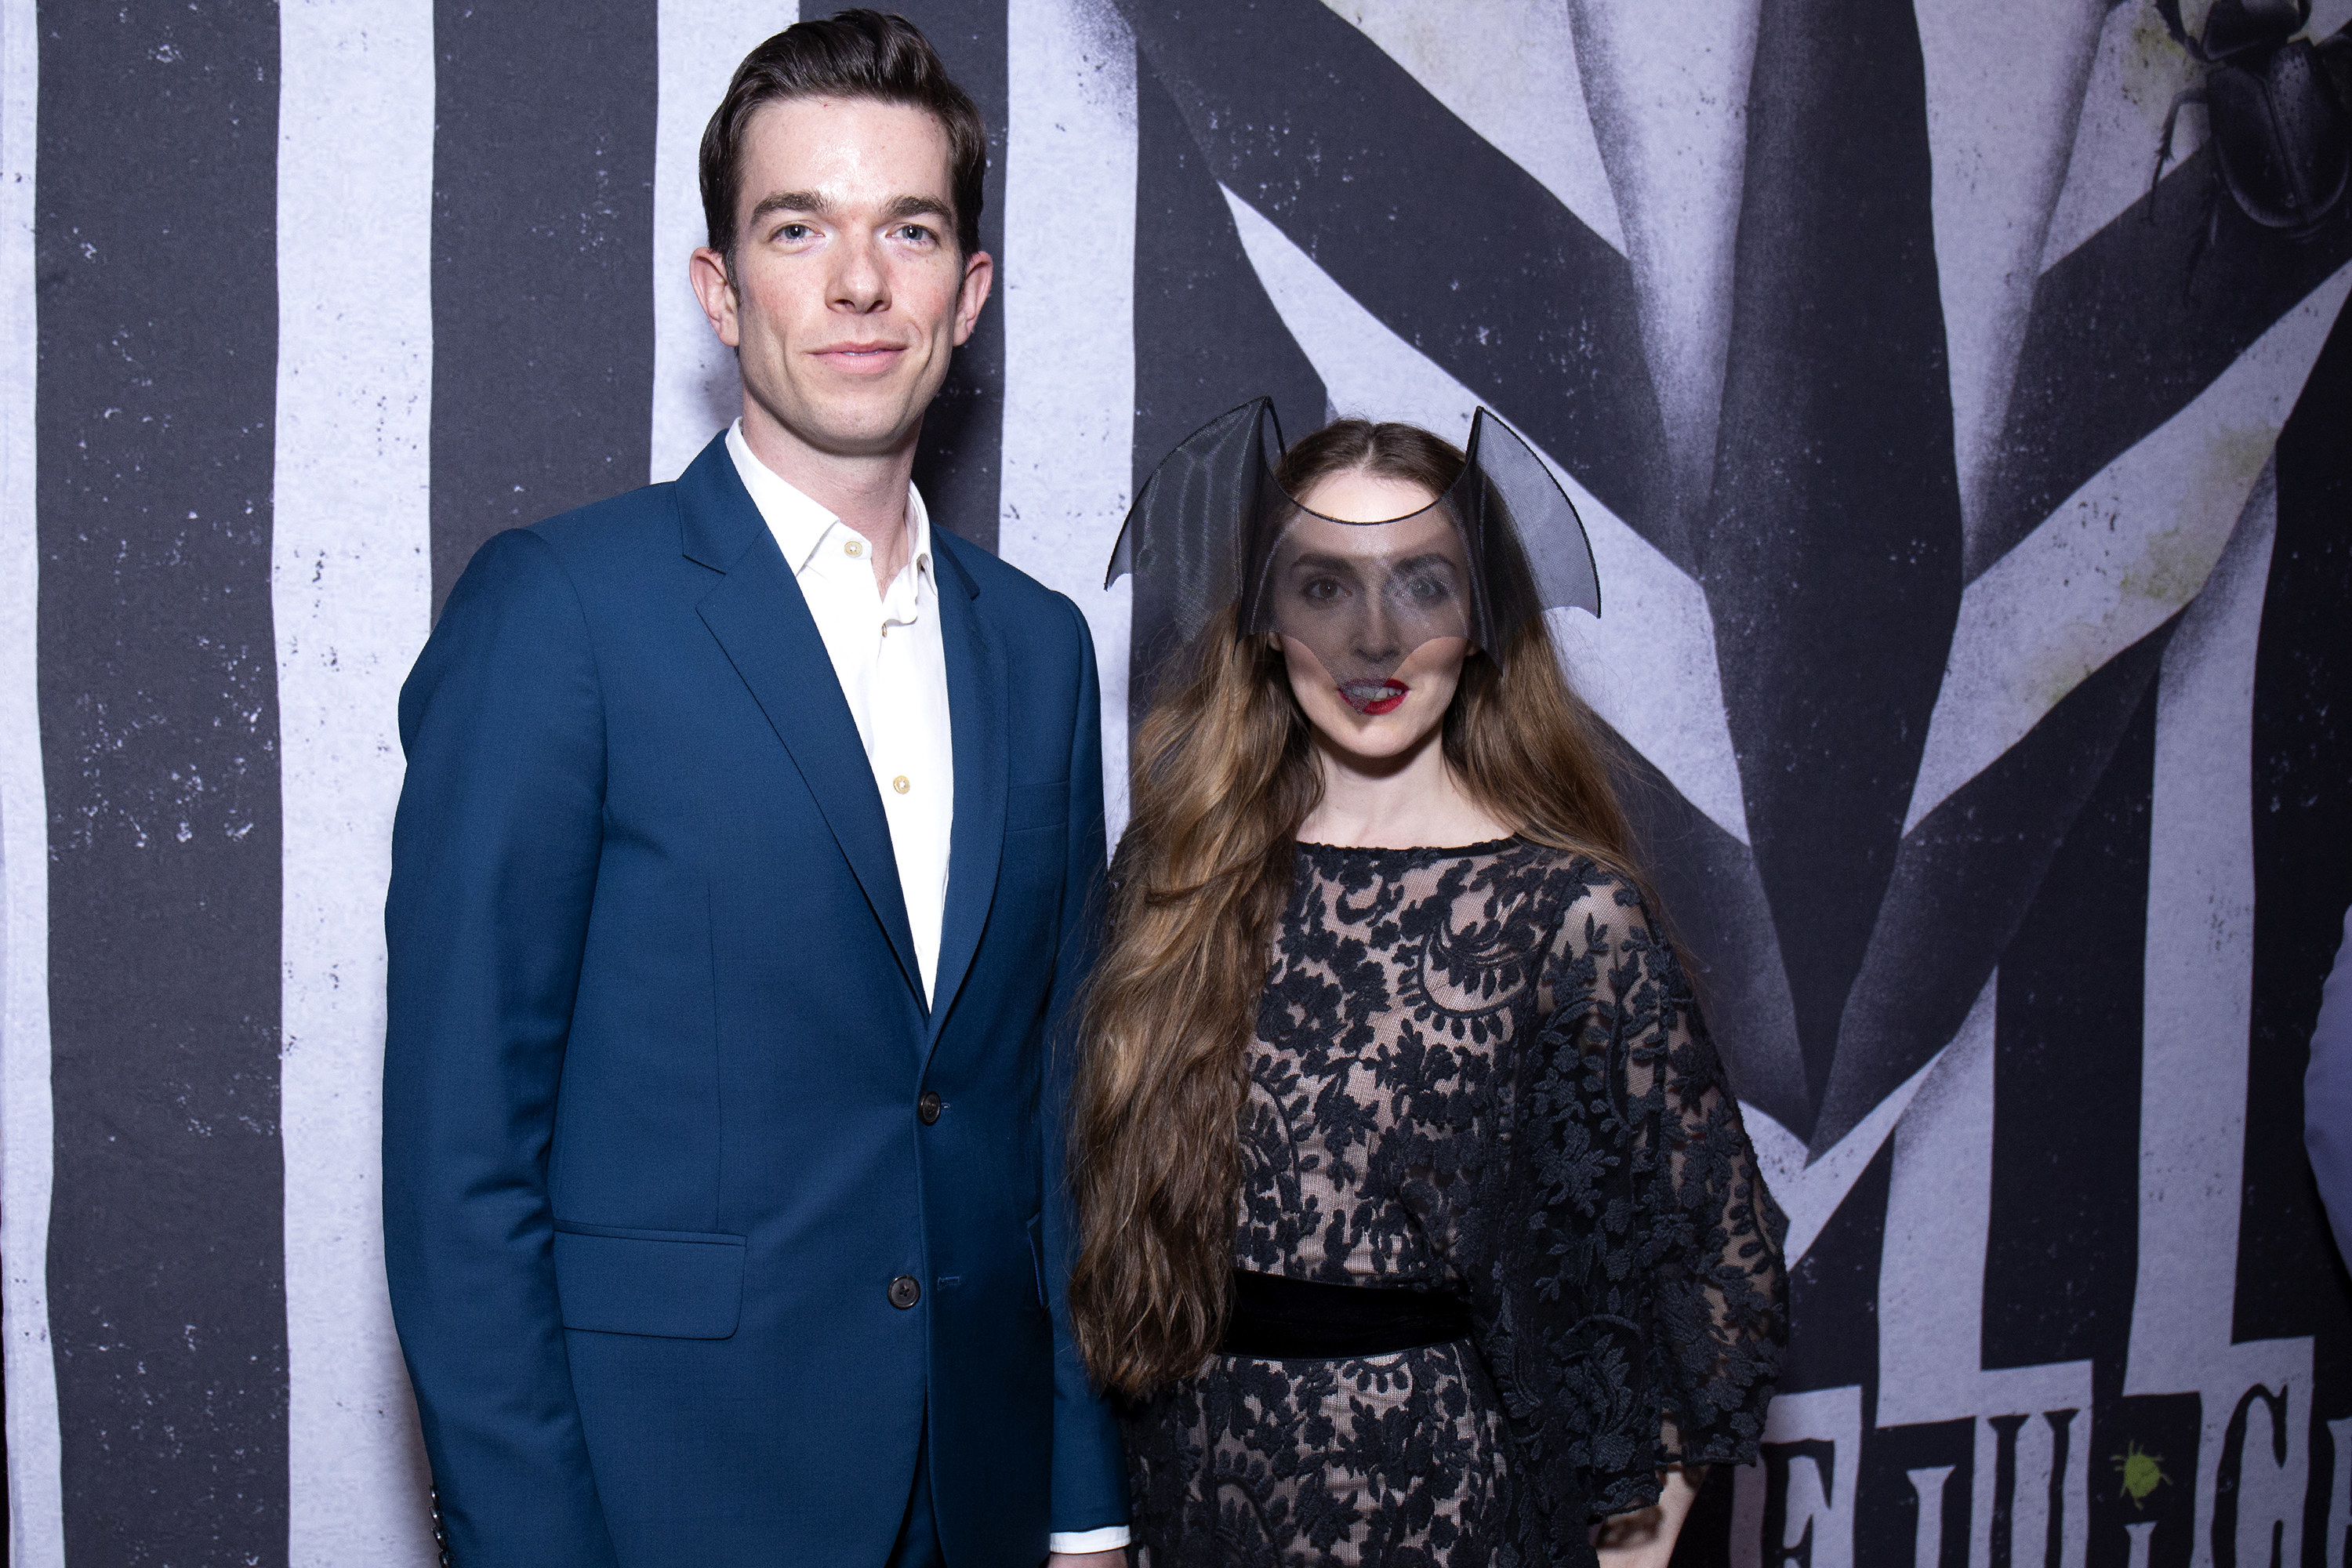 Mulaney and Tendler at the opening night of Beetlejuice in April 2019